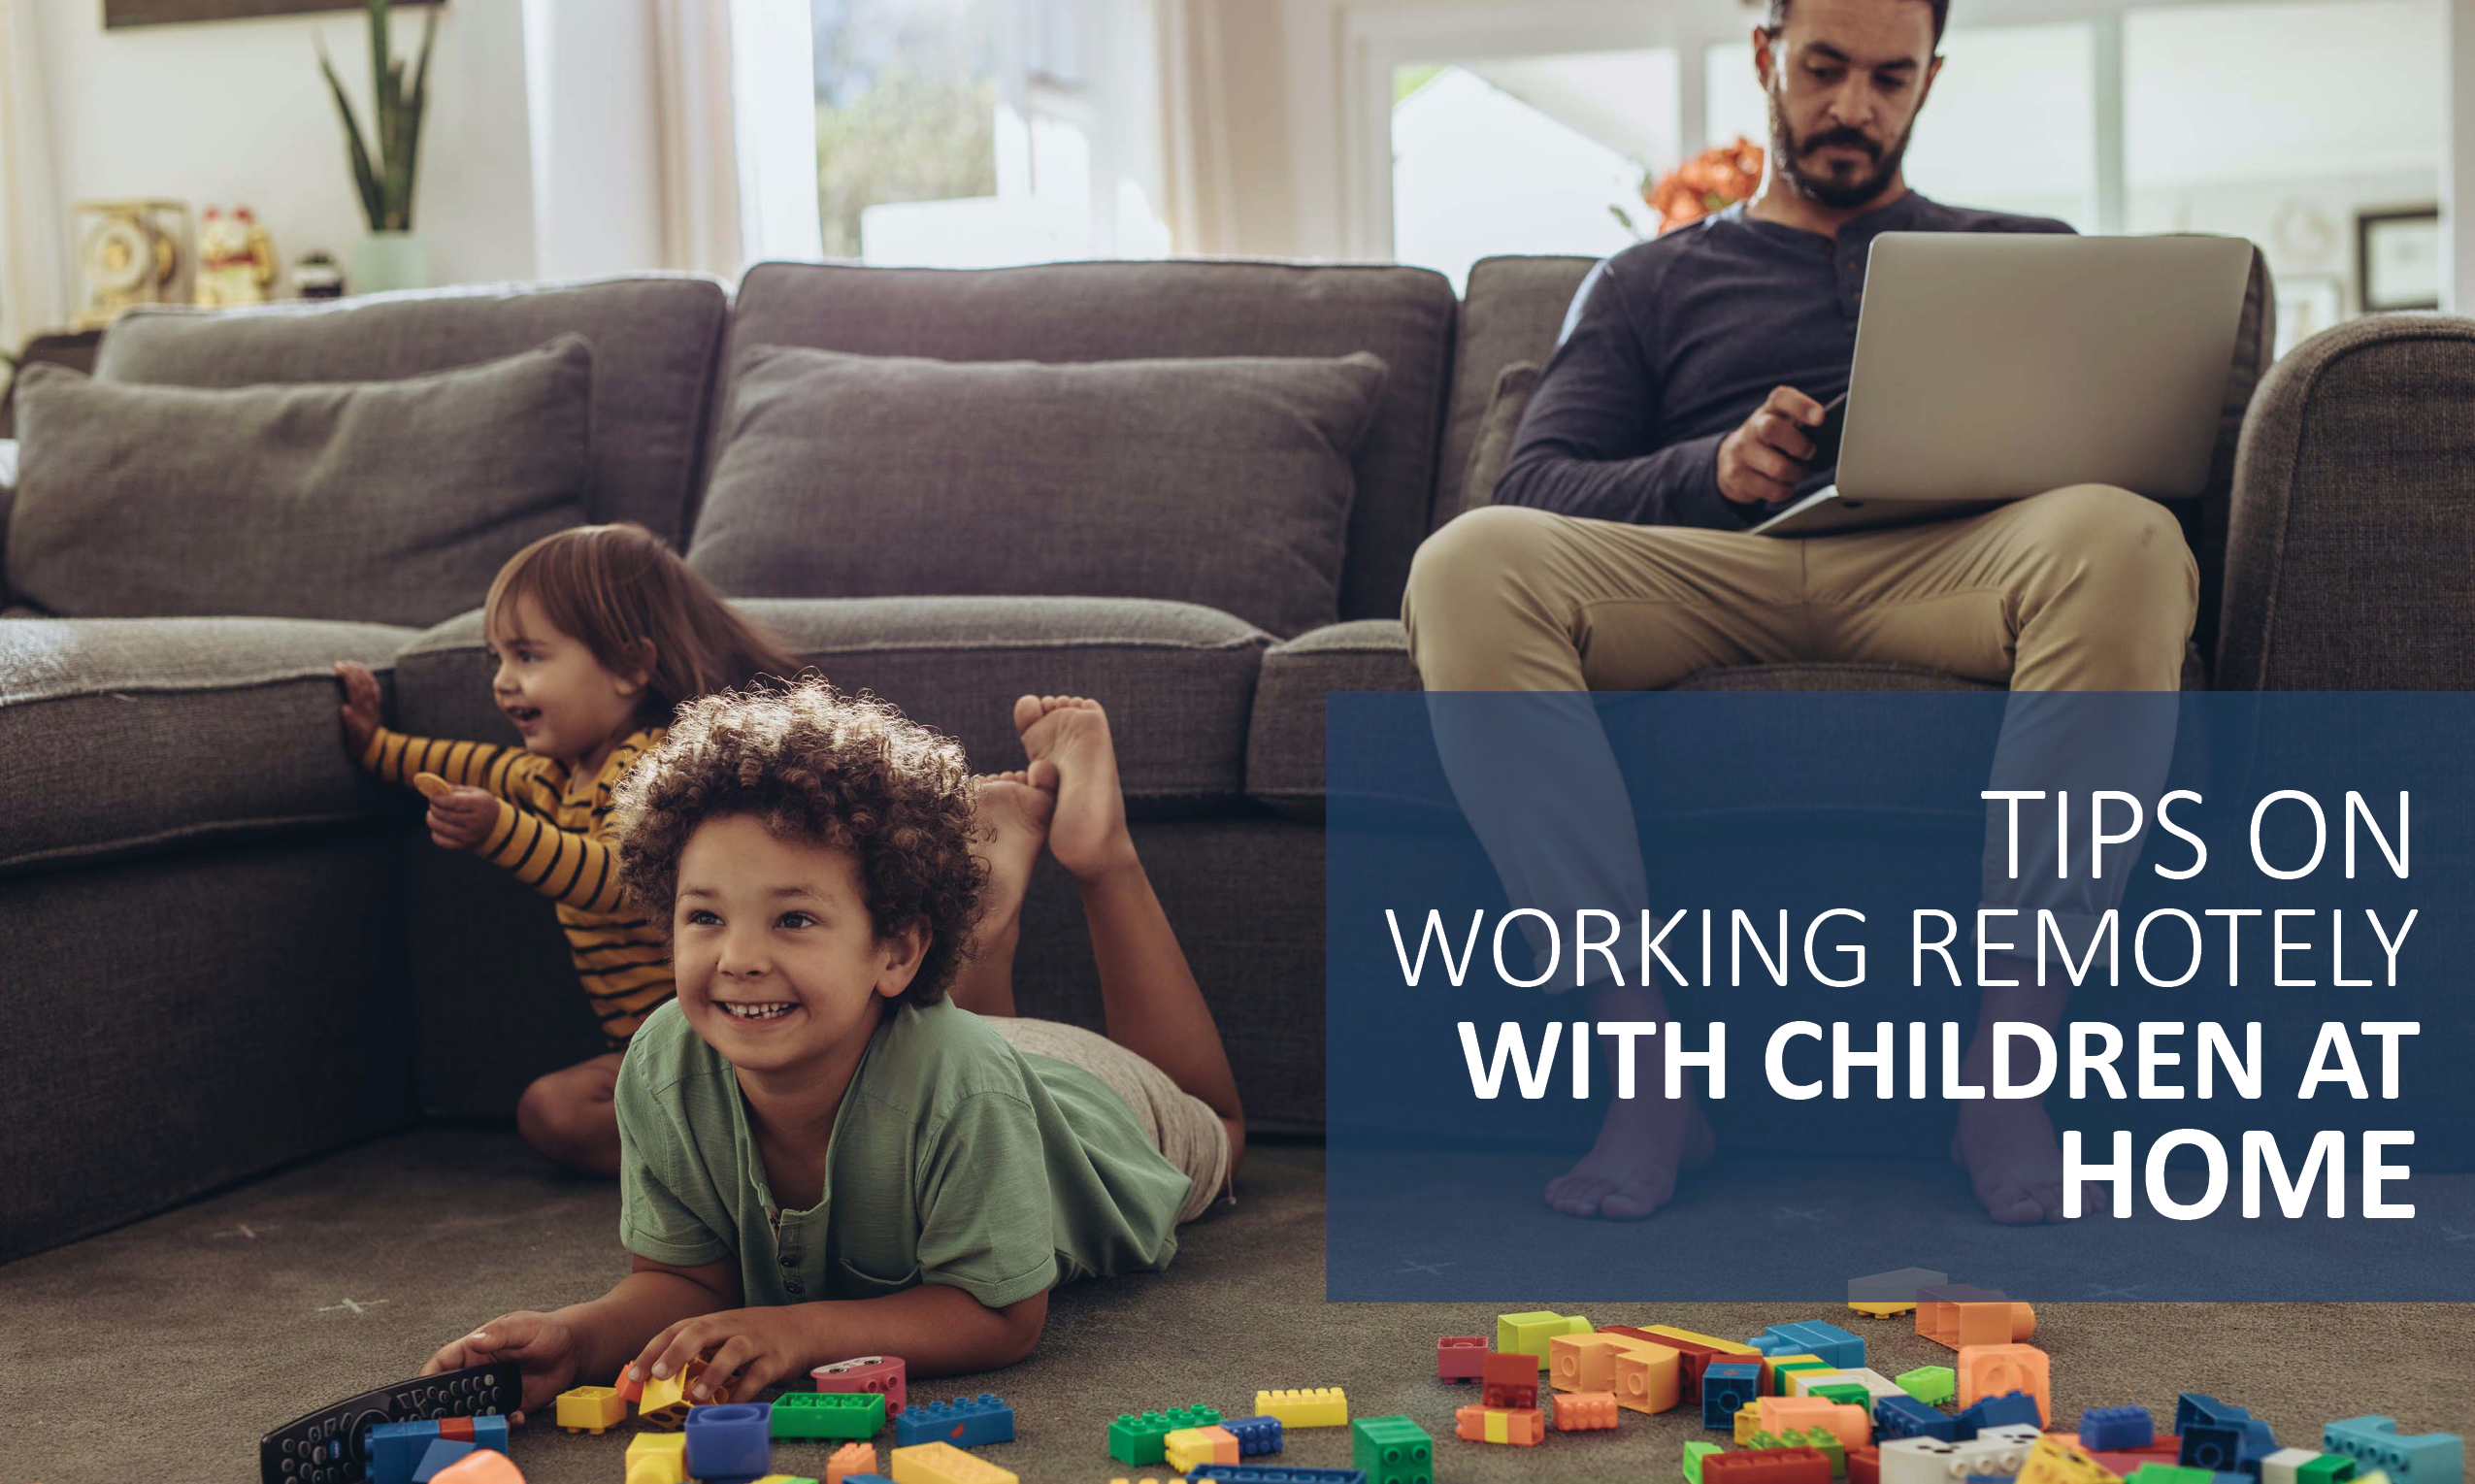 Tips on Working Remotely with Children at Home - Southern Cross